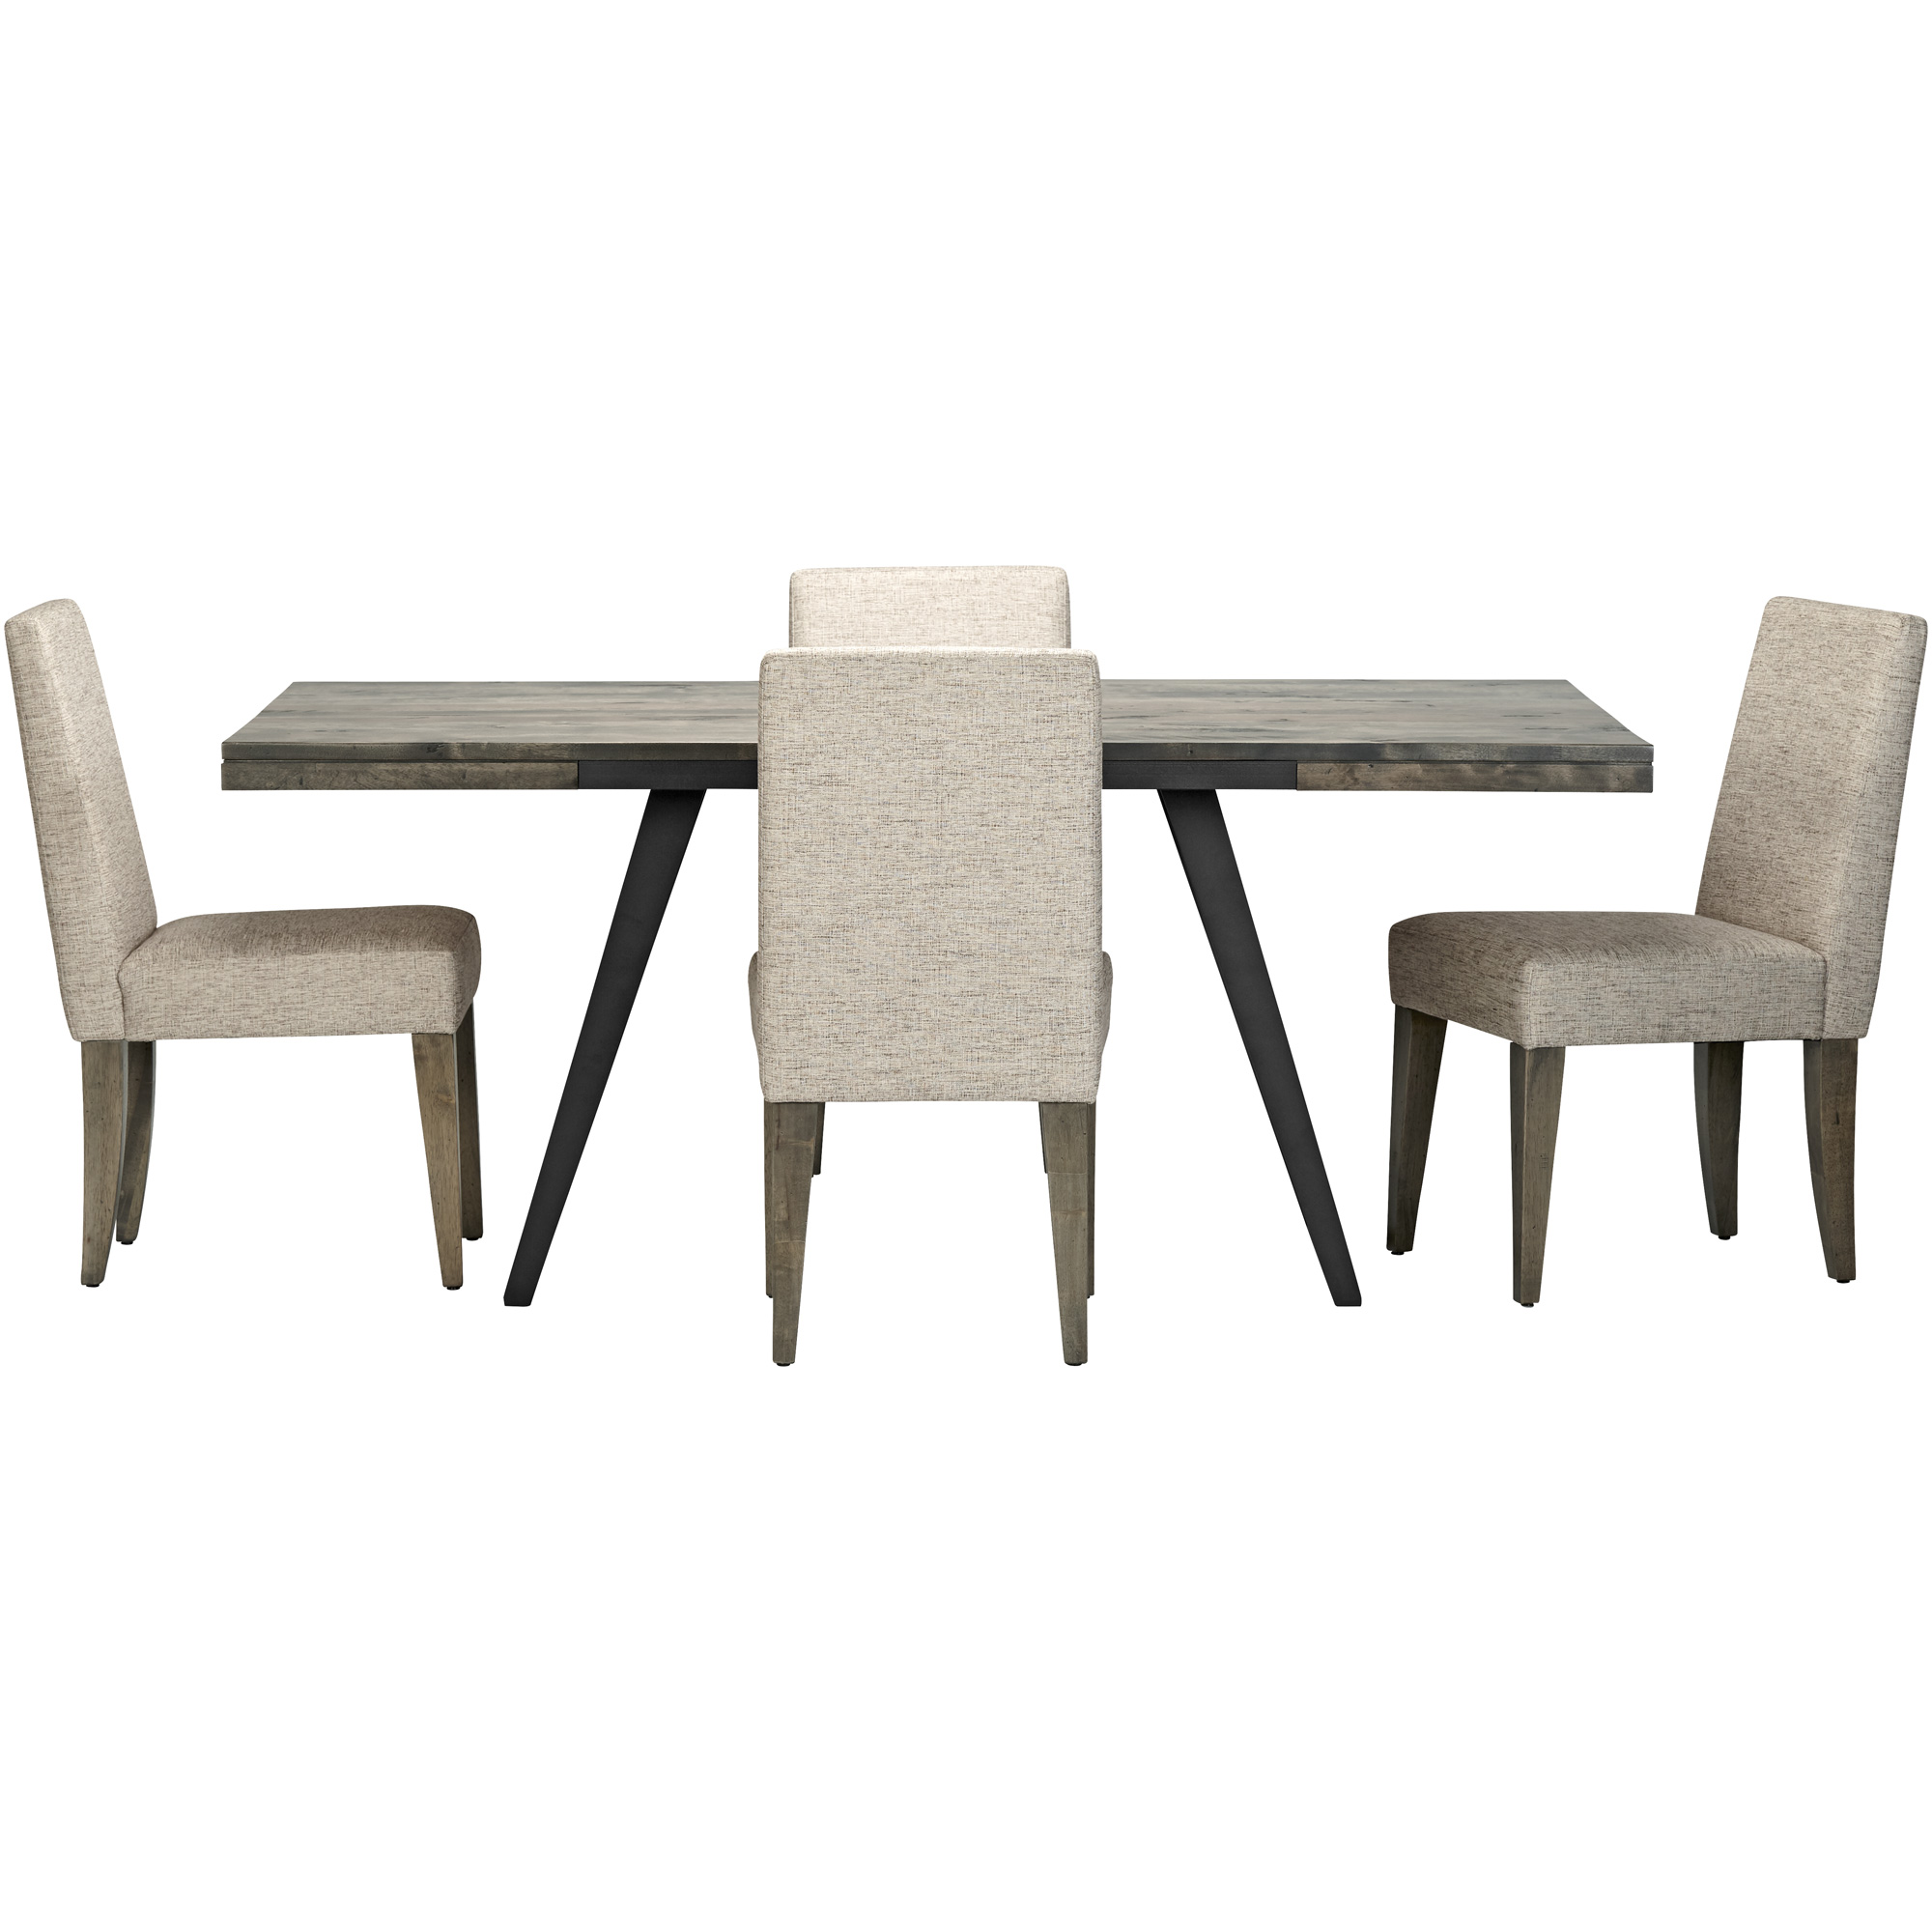 Canadel Furniture | Uptown Gray 5 Piece Upholstered Dining Set